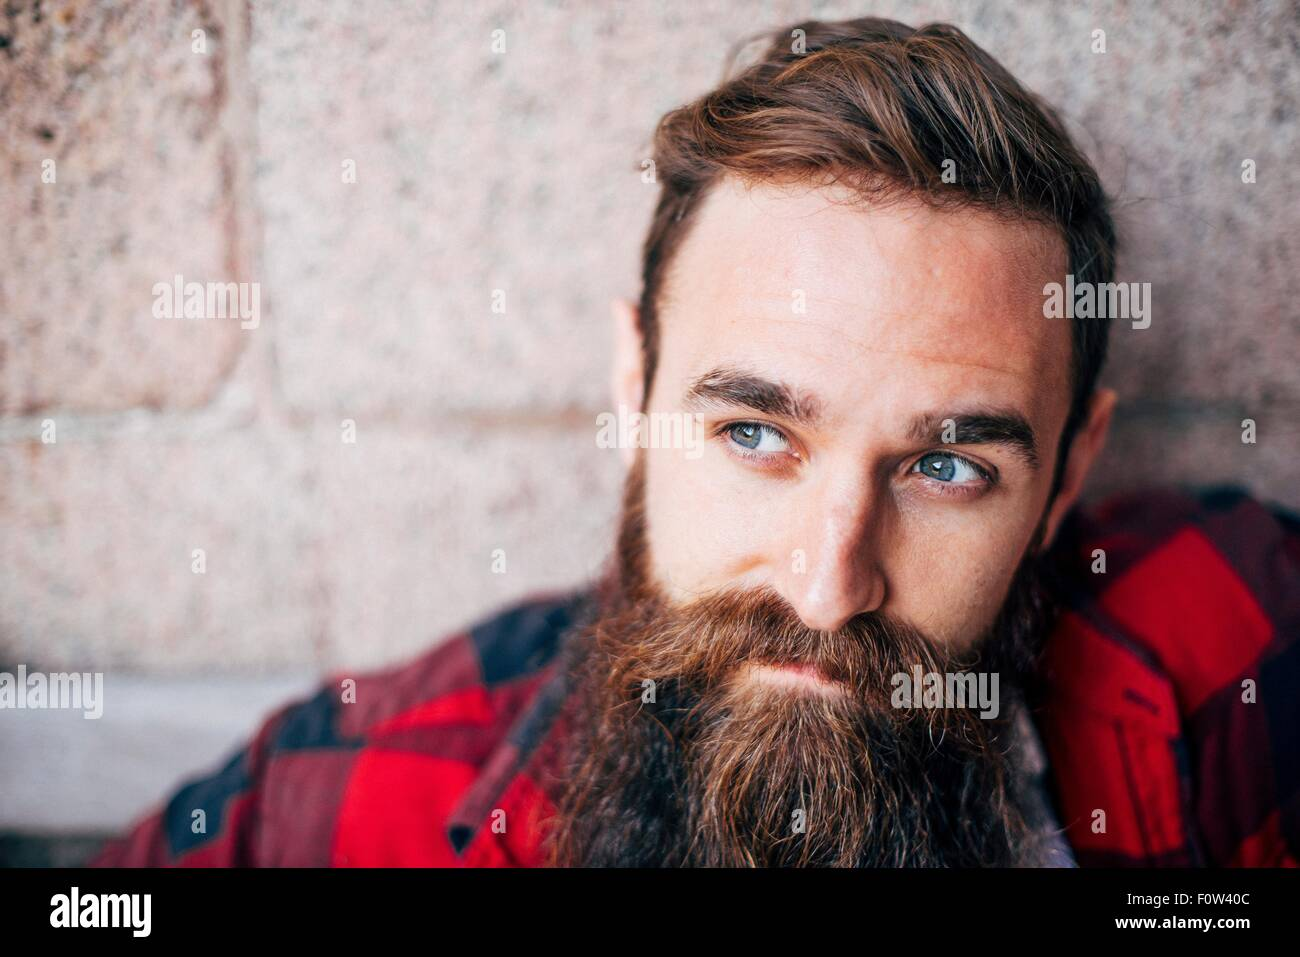 Portrait of man with beard looking away - Stock Image